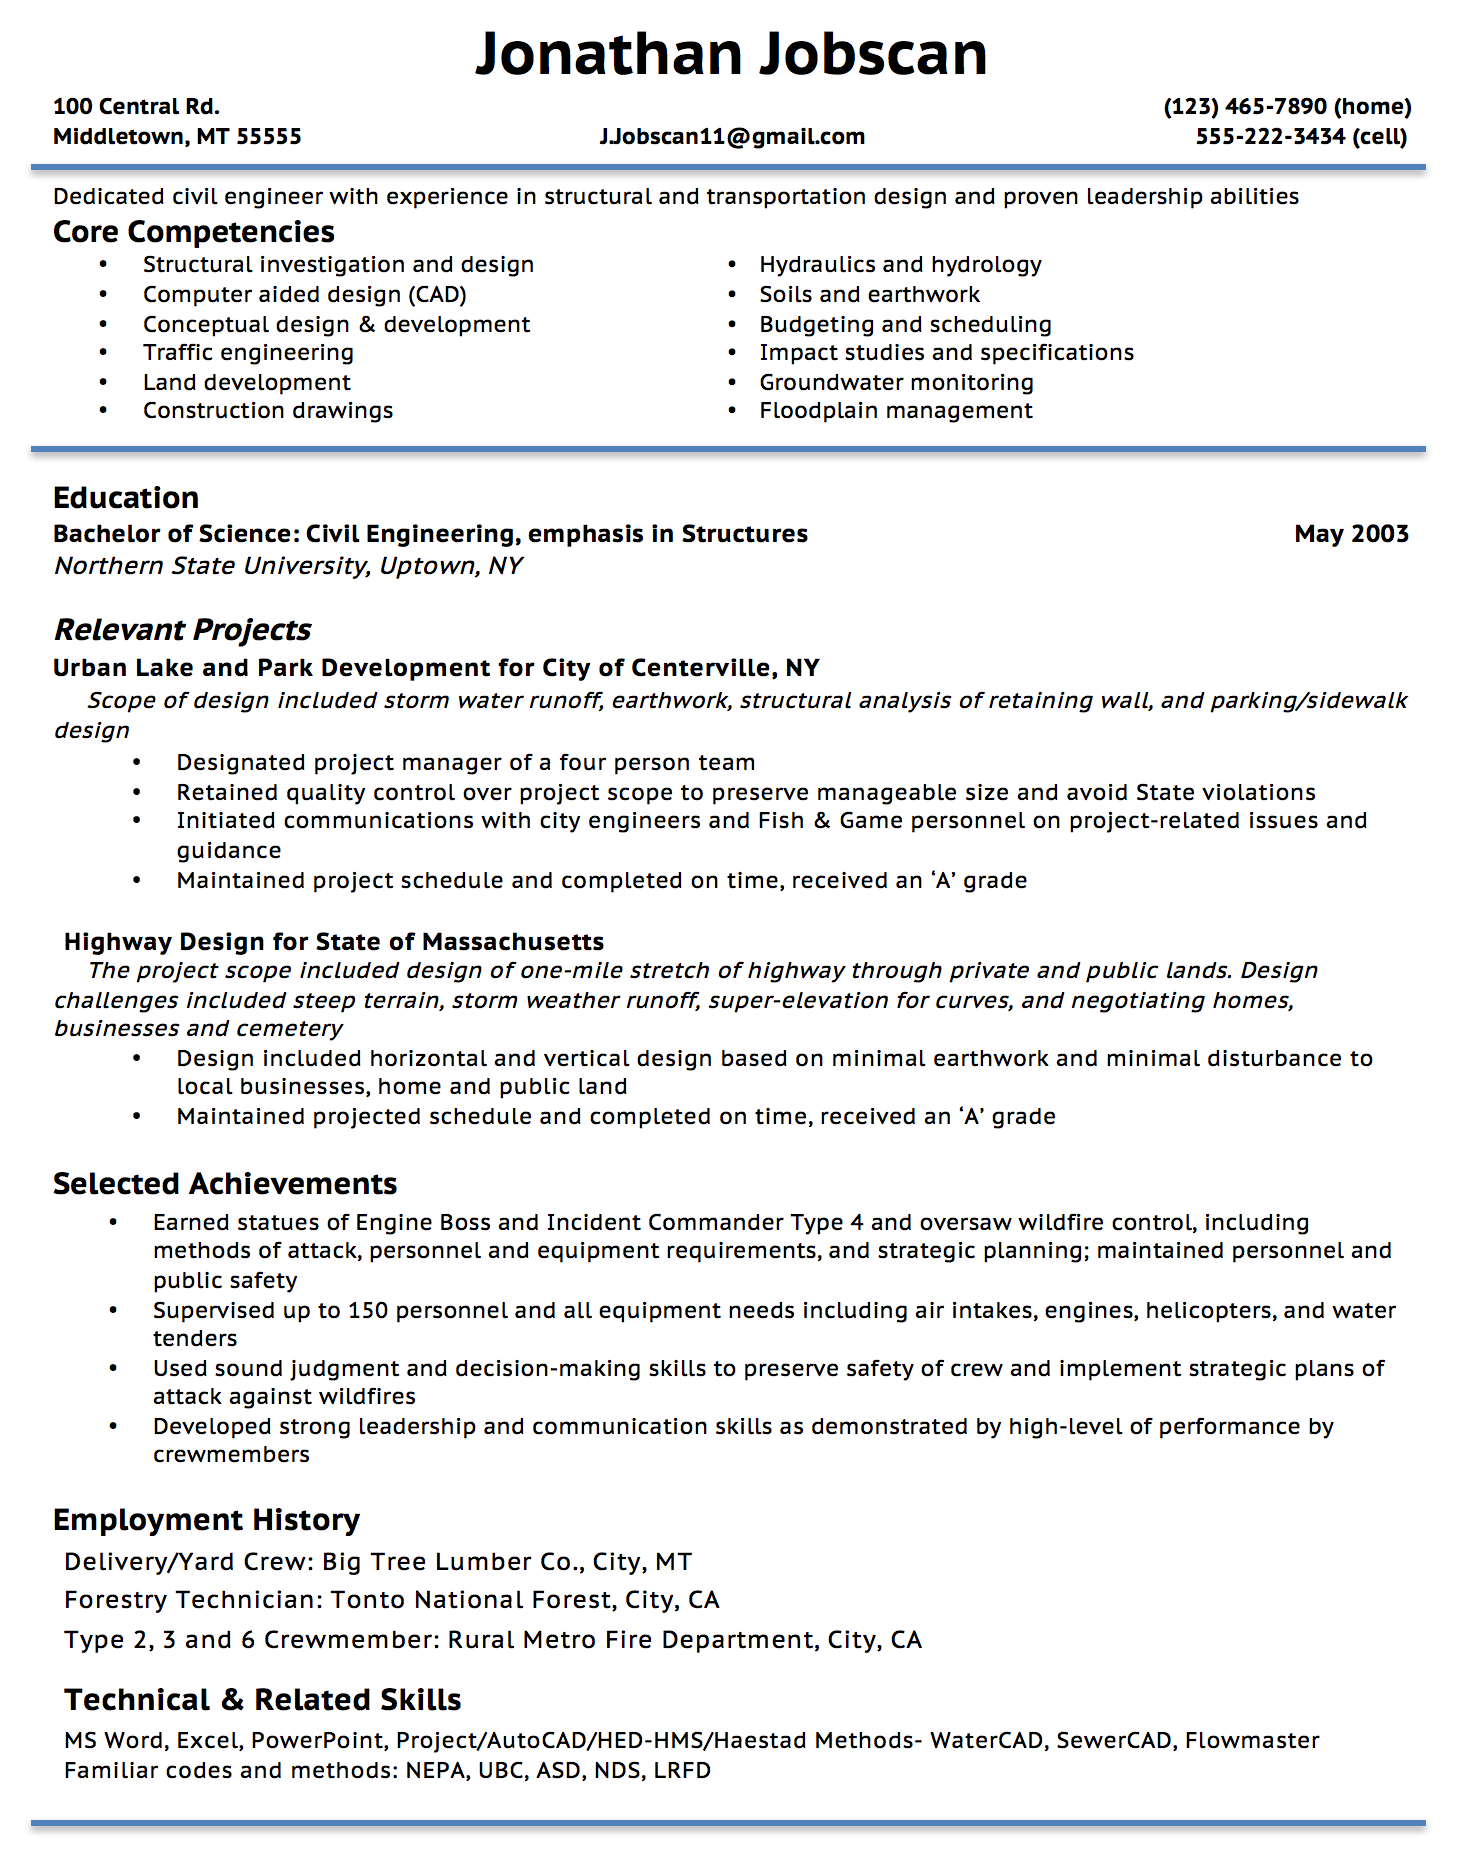 Opposenewapstandardsus  Inspiring Resume Writing Guide  Jobscan With Extraordinary Example Of A Functional Resume Format With Nice Template For Resume Free Also Cover Letter Resume Samples In Addition Infantry Resume And General Resume Objective Samples As Well As Resume Introduction Letter Additionally Resume Active Verbs From Jobscanco With Opposenewapstandardsus  Extraordinary Resume Writing Guide  Jobscan With Nice Example Of A Functional Resume Format And Inspiring Template For Resume Free Also Cover Letter Resume Samples In Addition Infantry Resume From Jobscanco